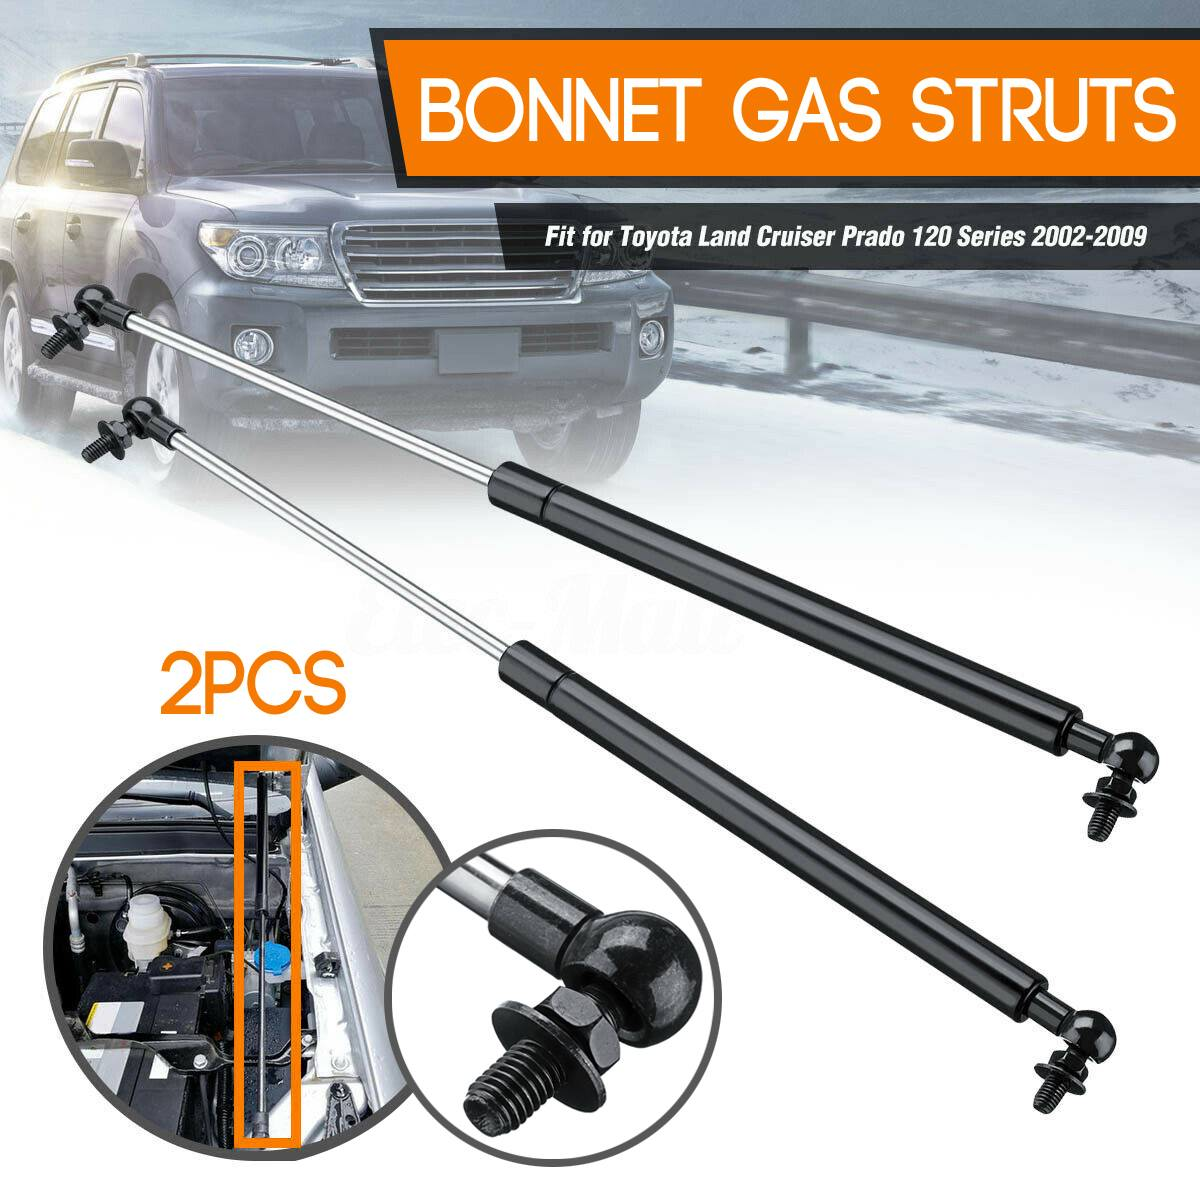 2Pc Car Hood Struts Bonnet Gas Lift Support Damper Fits for Toyota Landcruiser Prado 120 Series 2002-2009 475MM